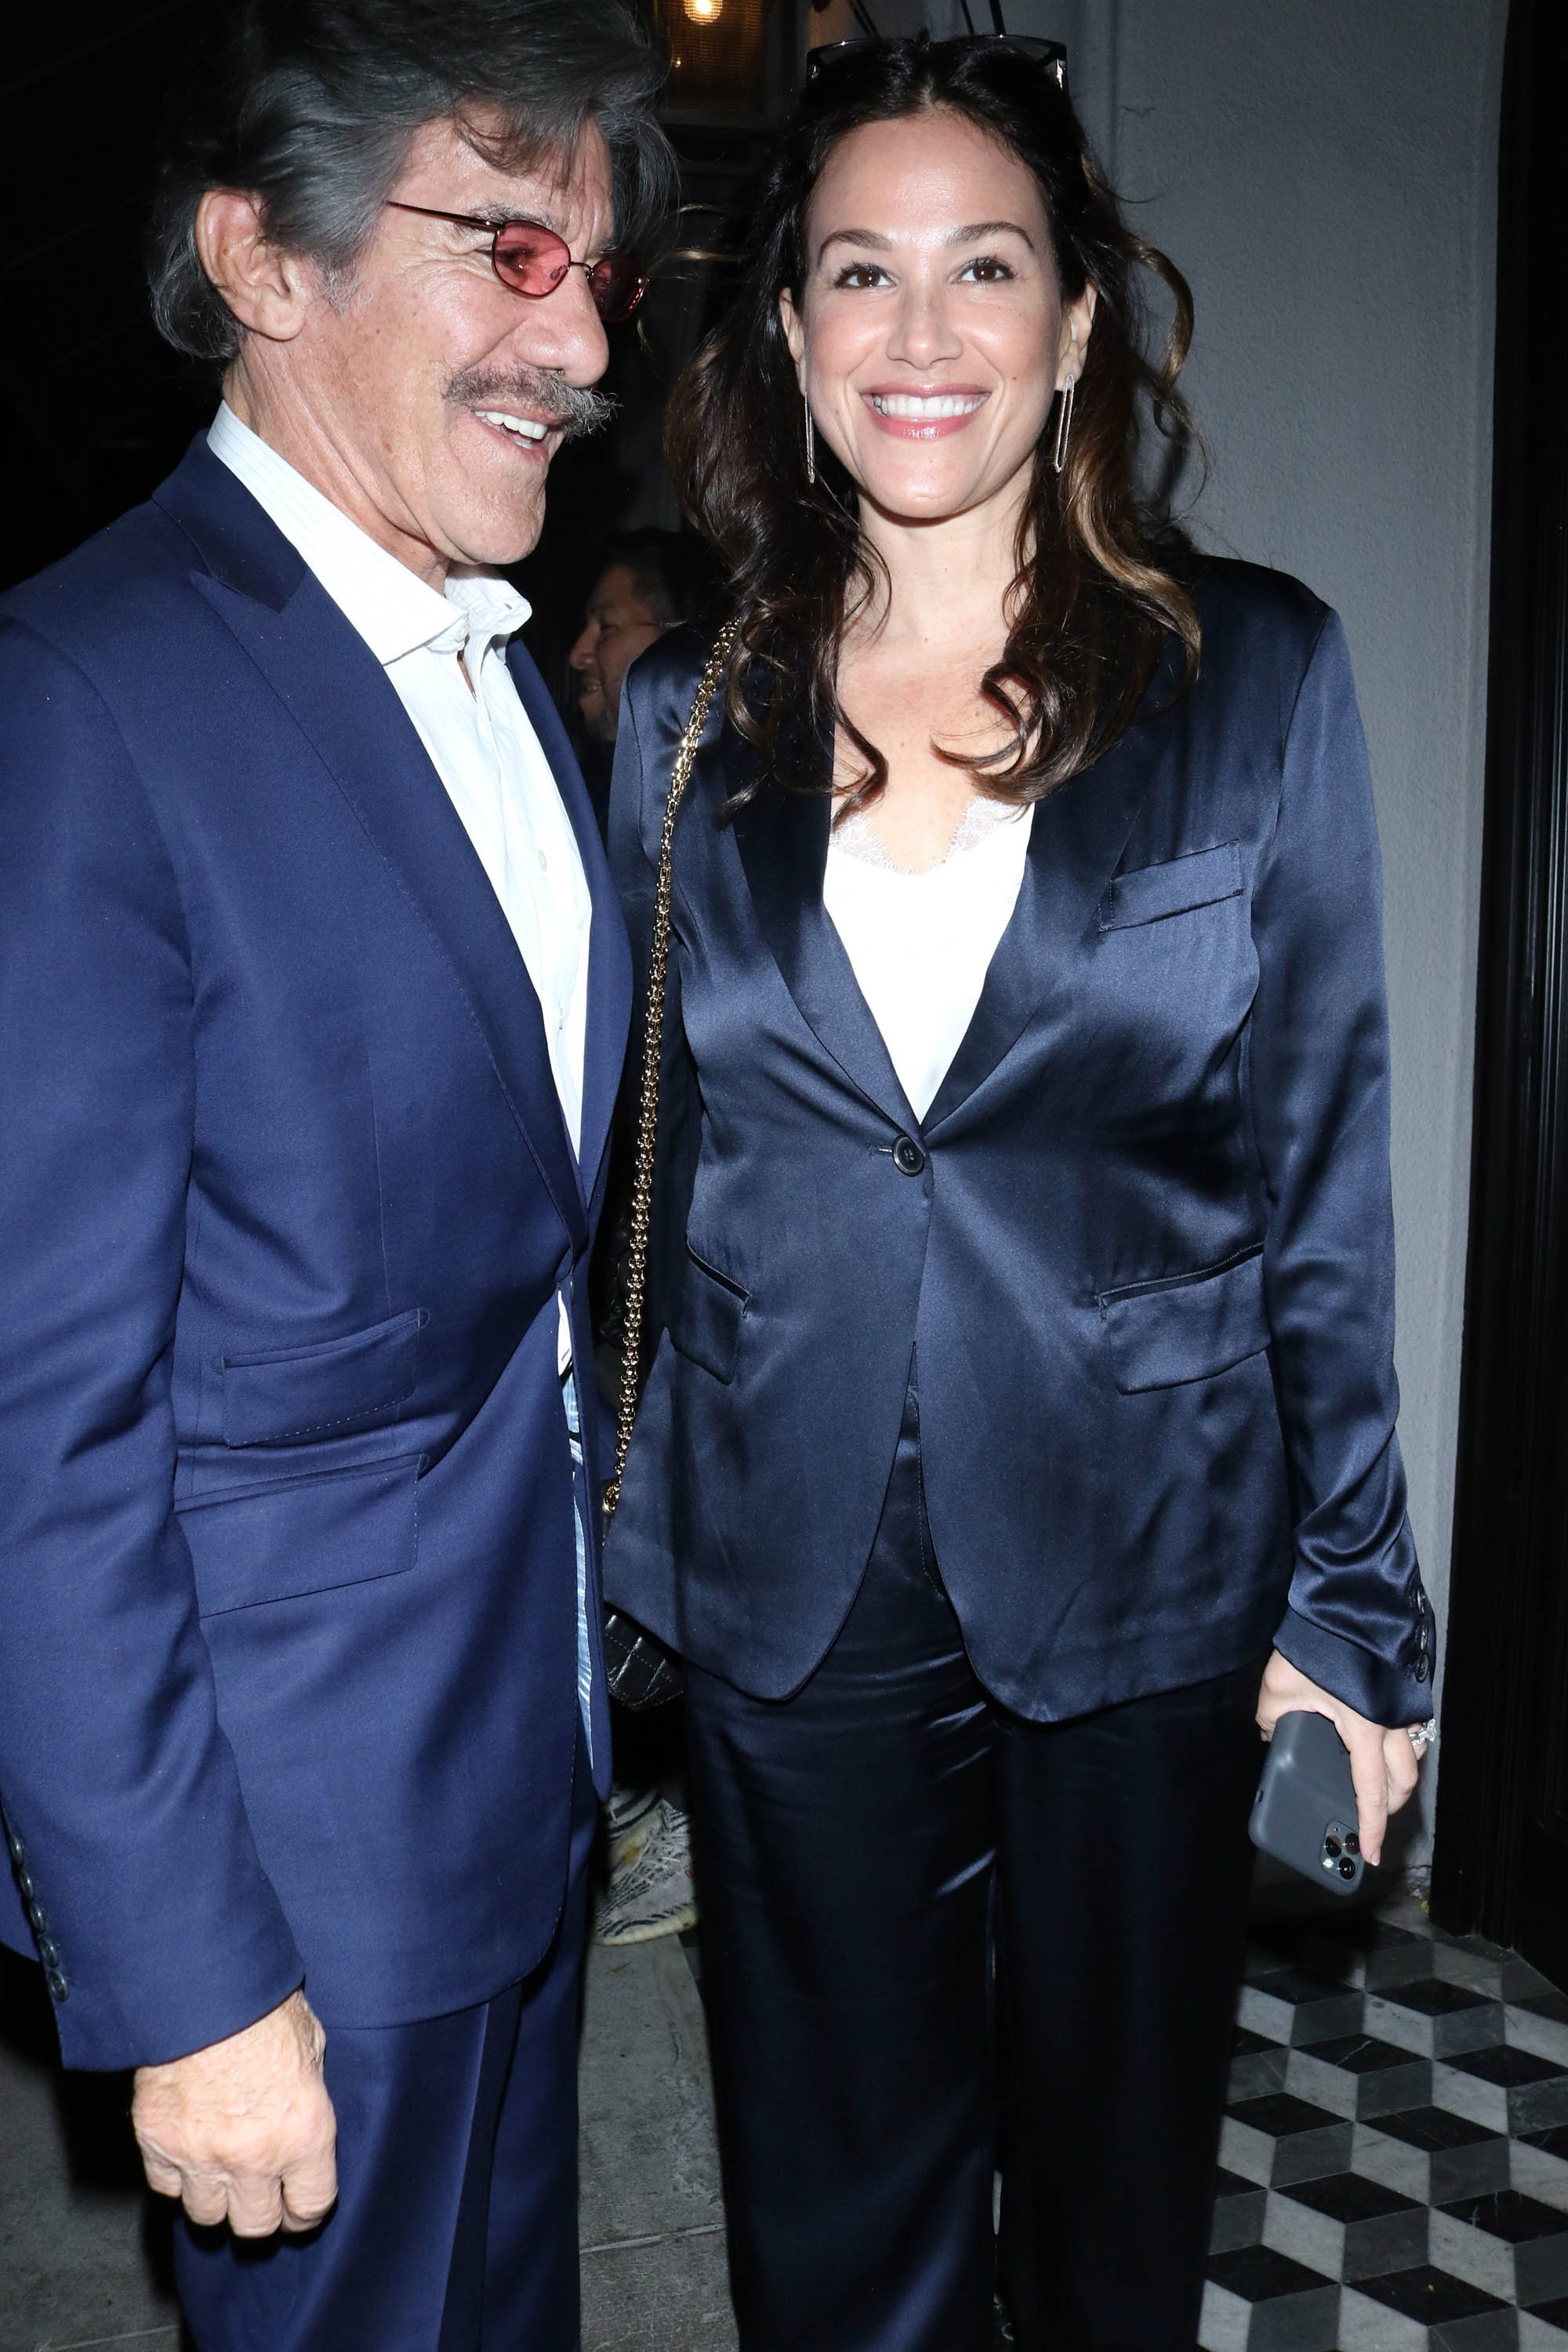 Geraldo Rivera and Erica Levy on February 1, 2020 in Los Angeles, California | Source: Getty Images